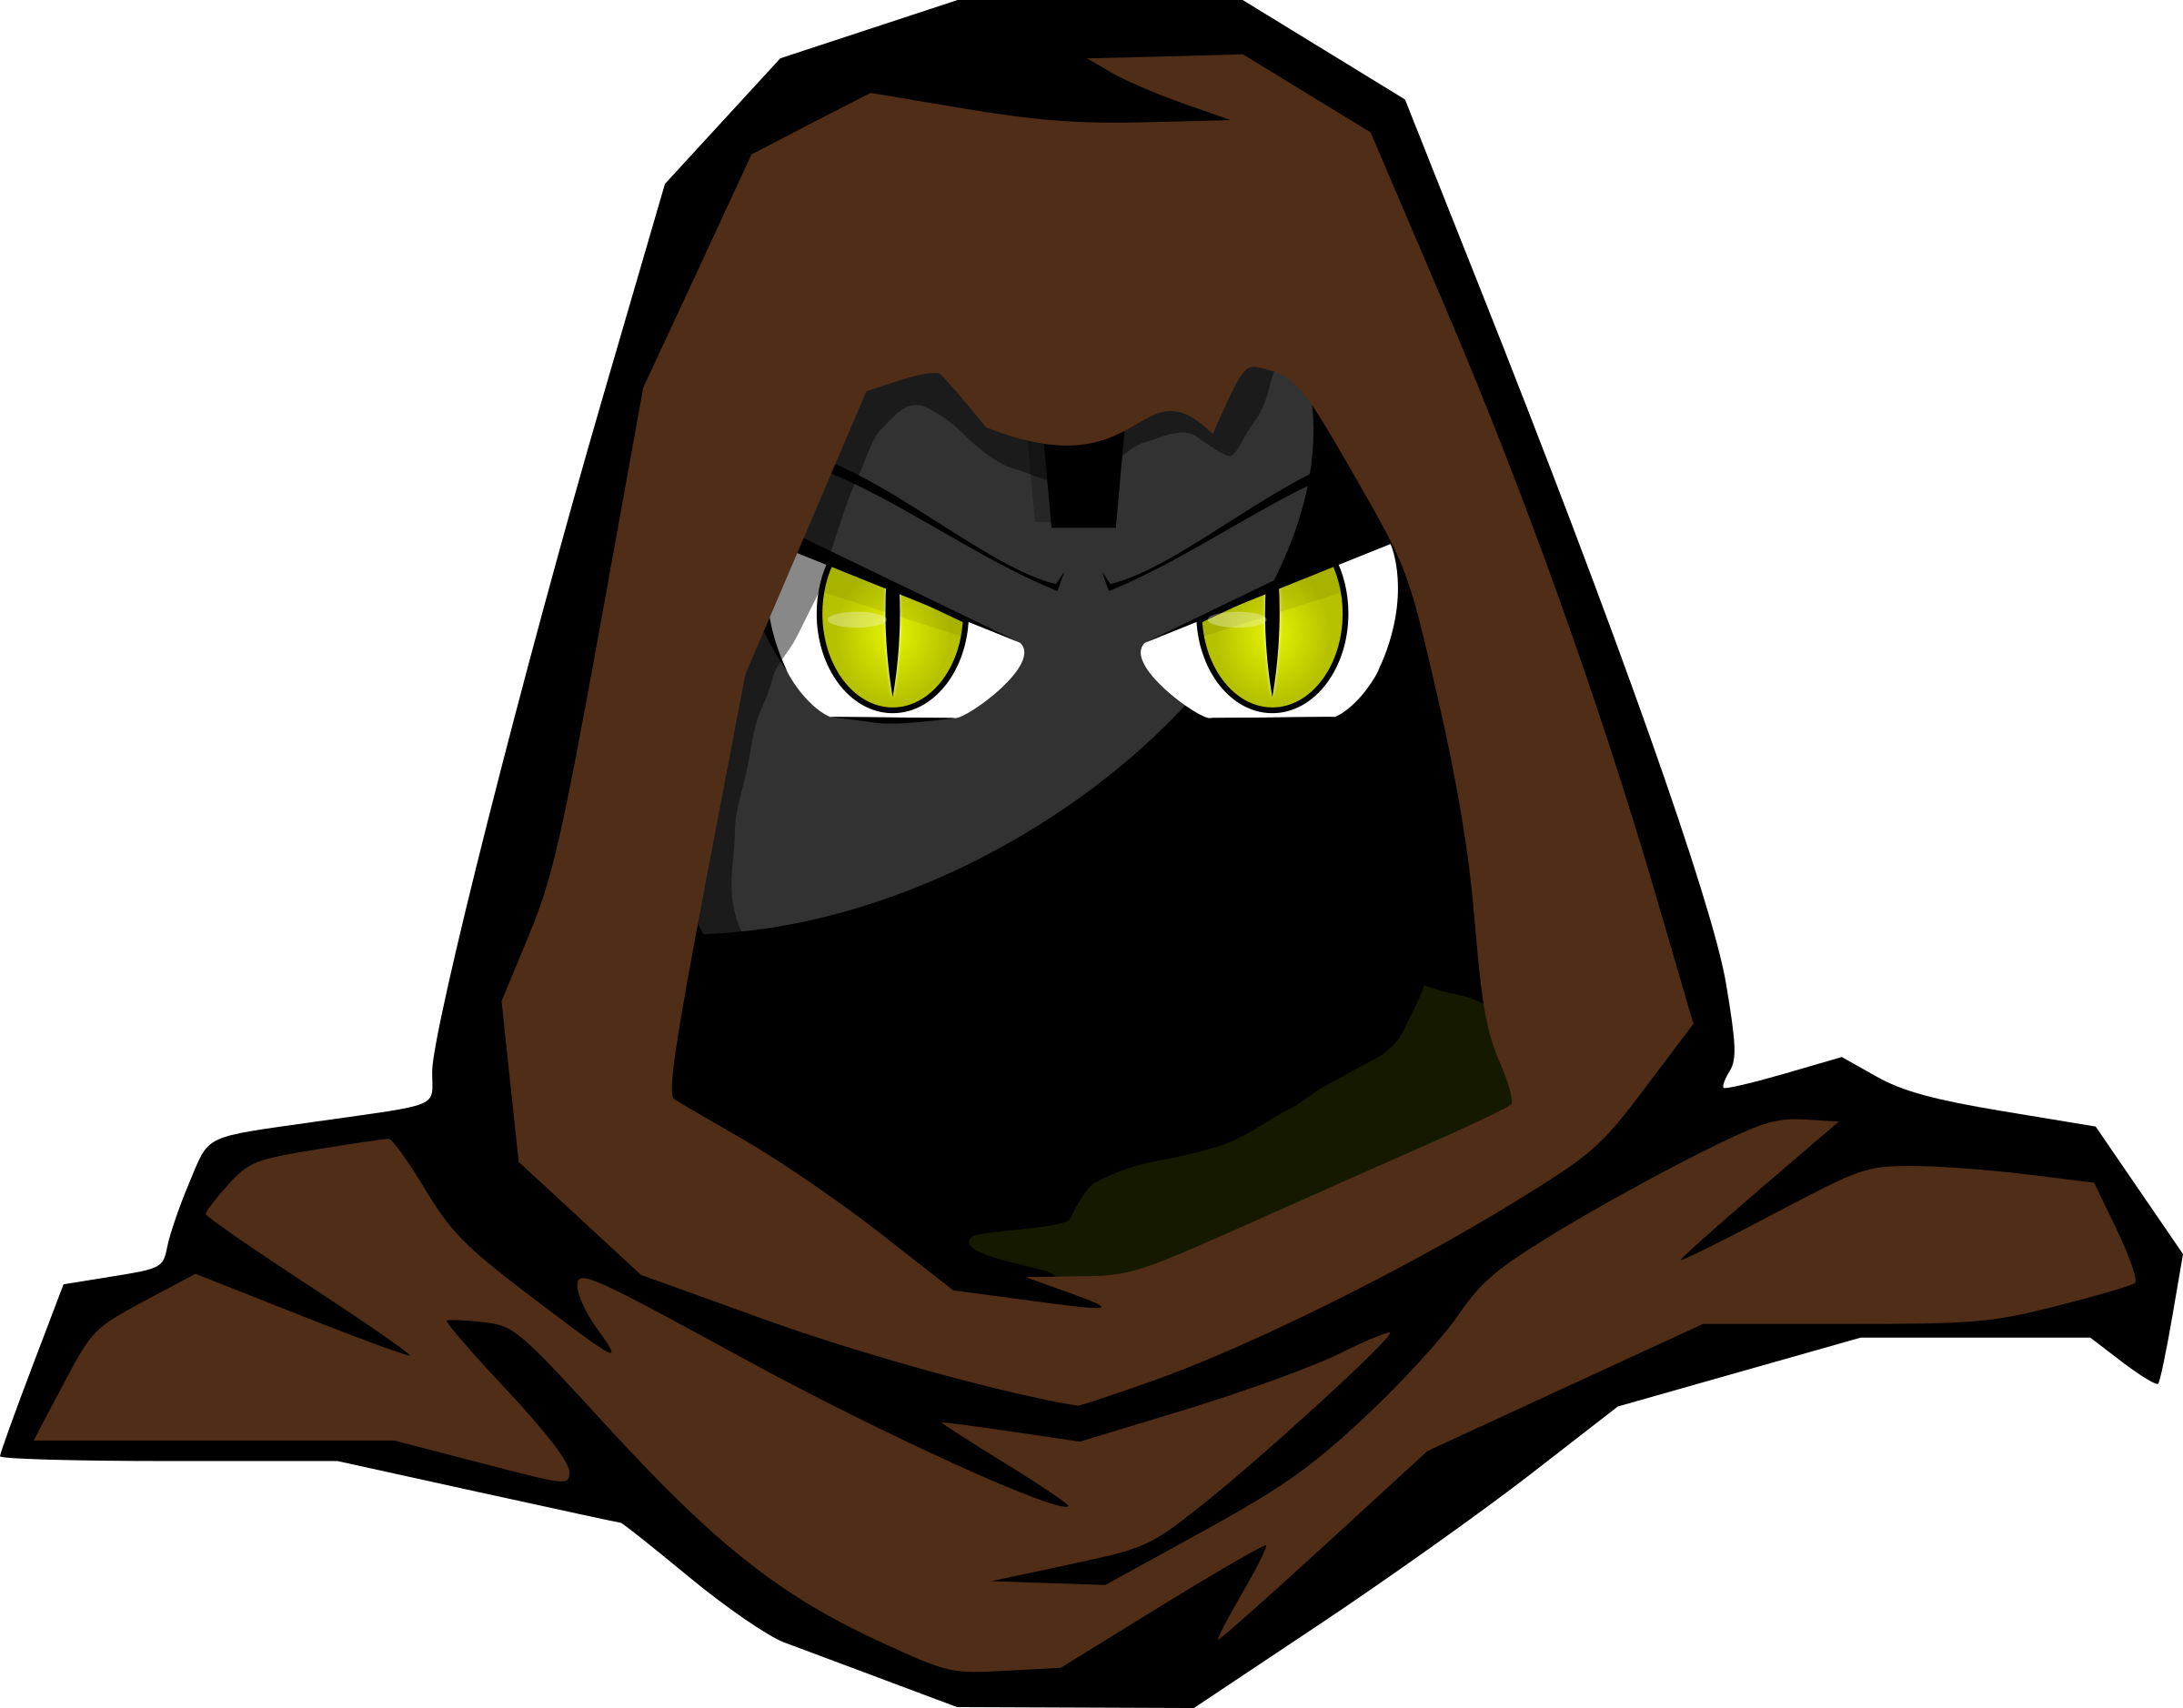 Hooded ii big image. 2 clipart cartoon character